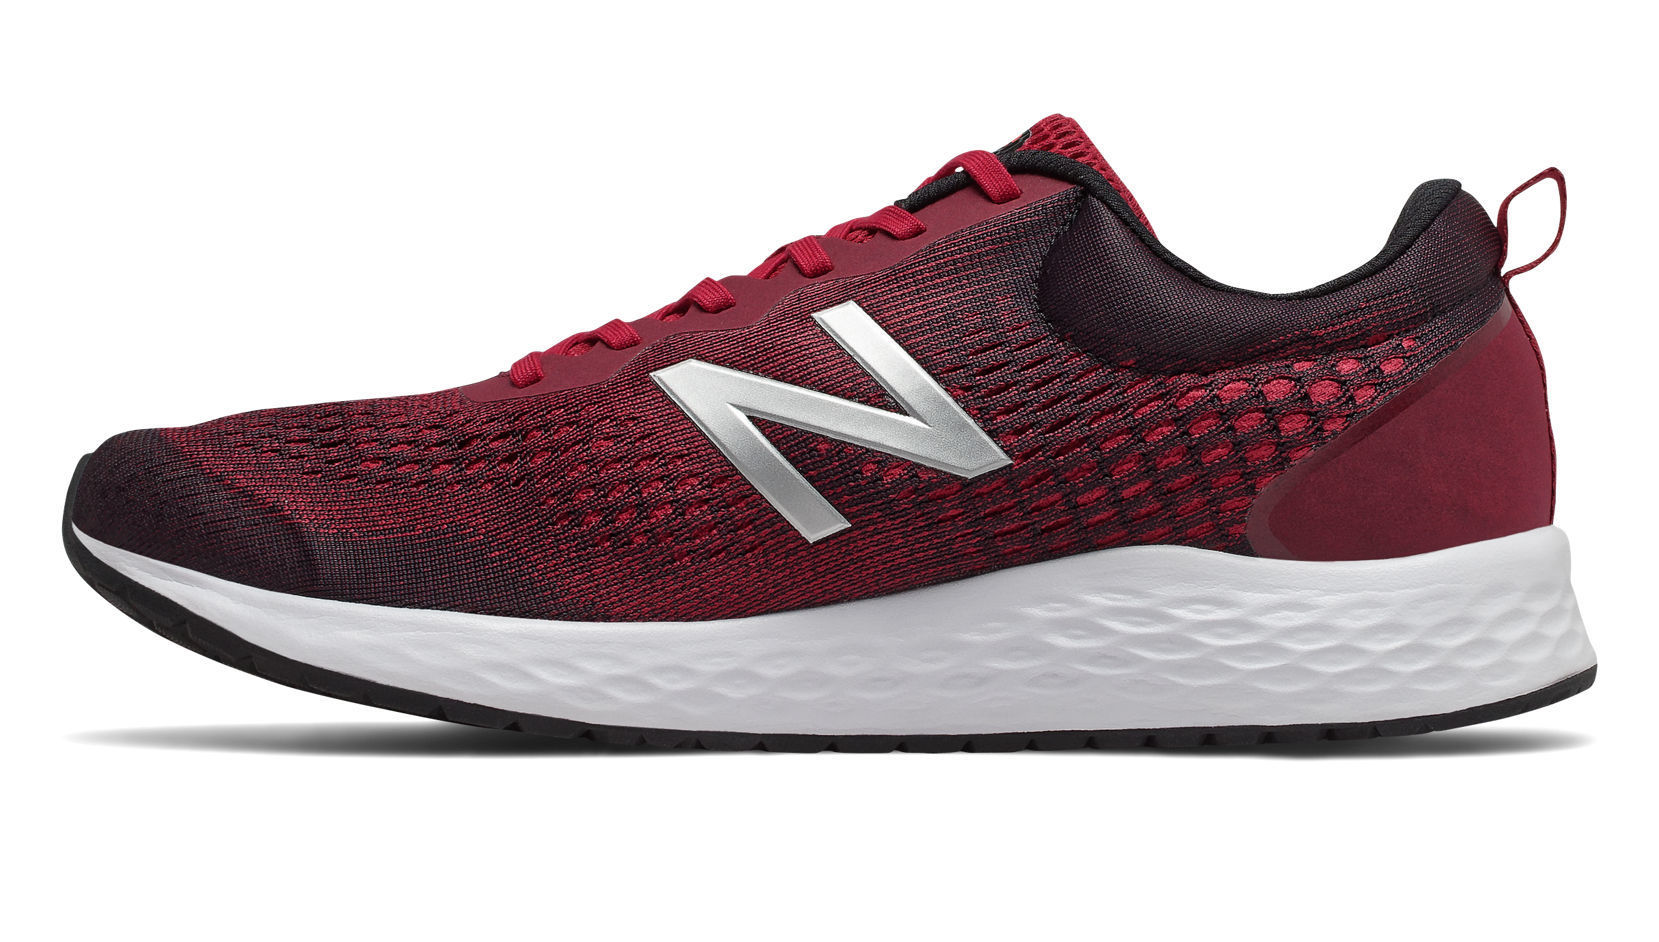 Picture of NB Performance Mens Shoes - MARISCR3 (Neo Crimson with Black & Neo Flame)